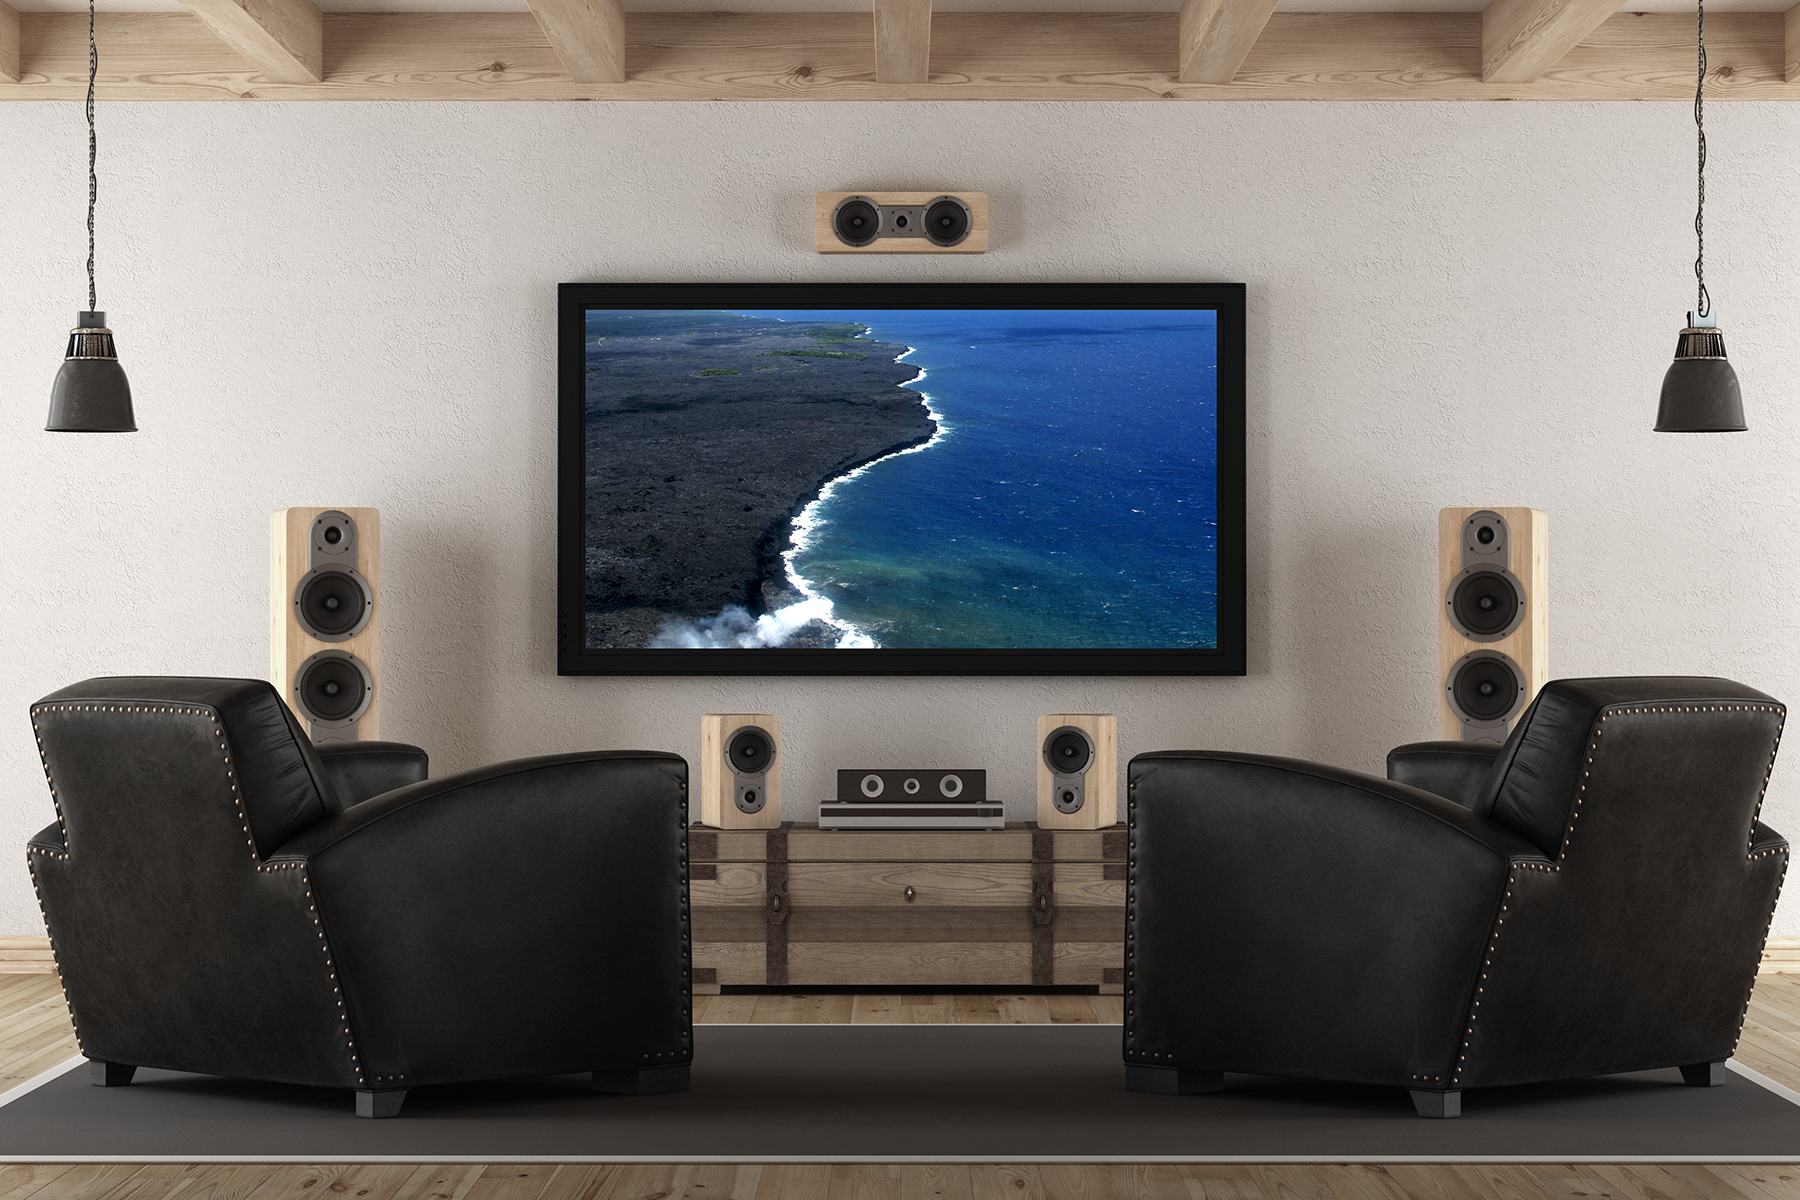 Living room with surround sound and a TV